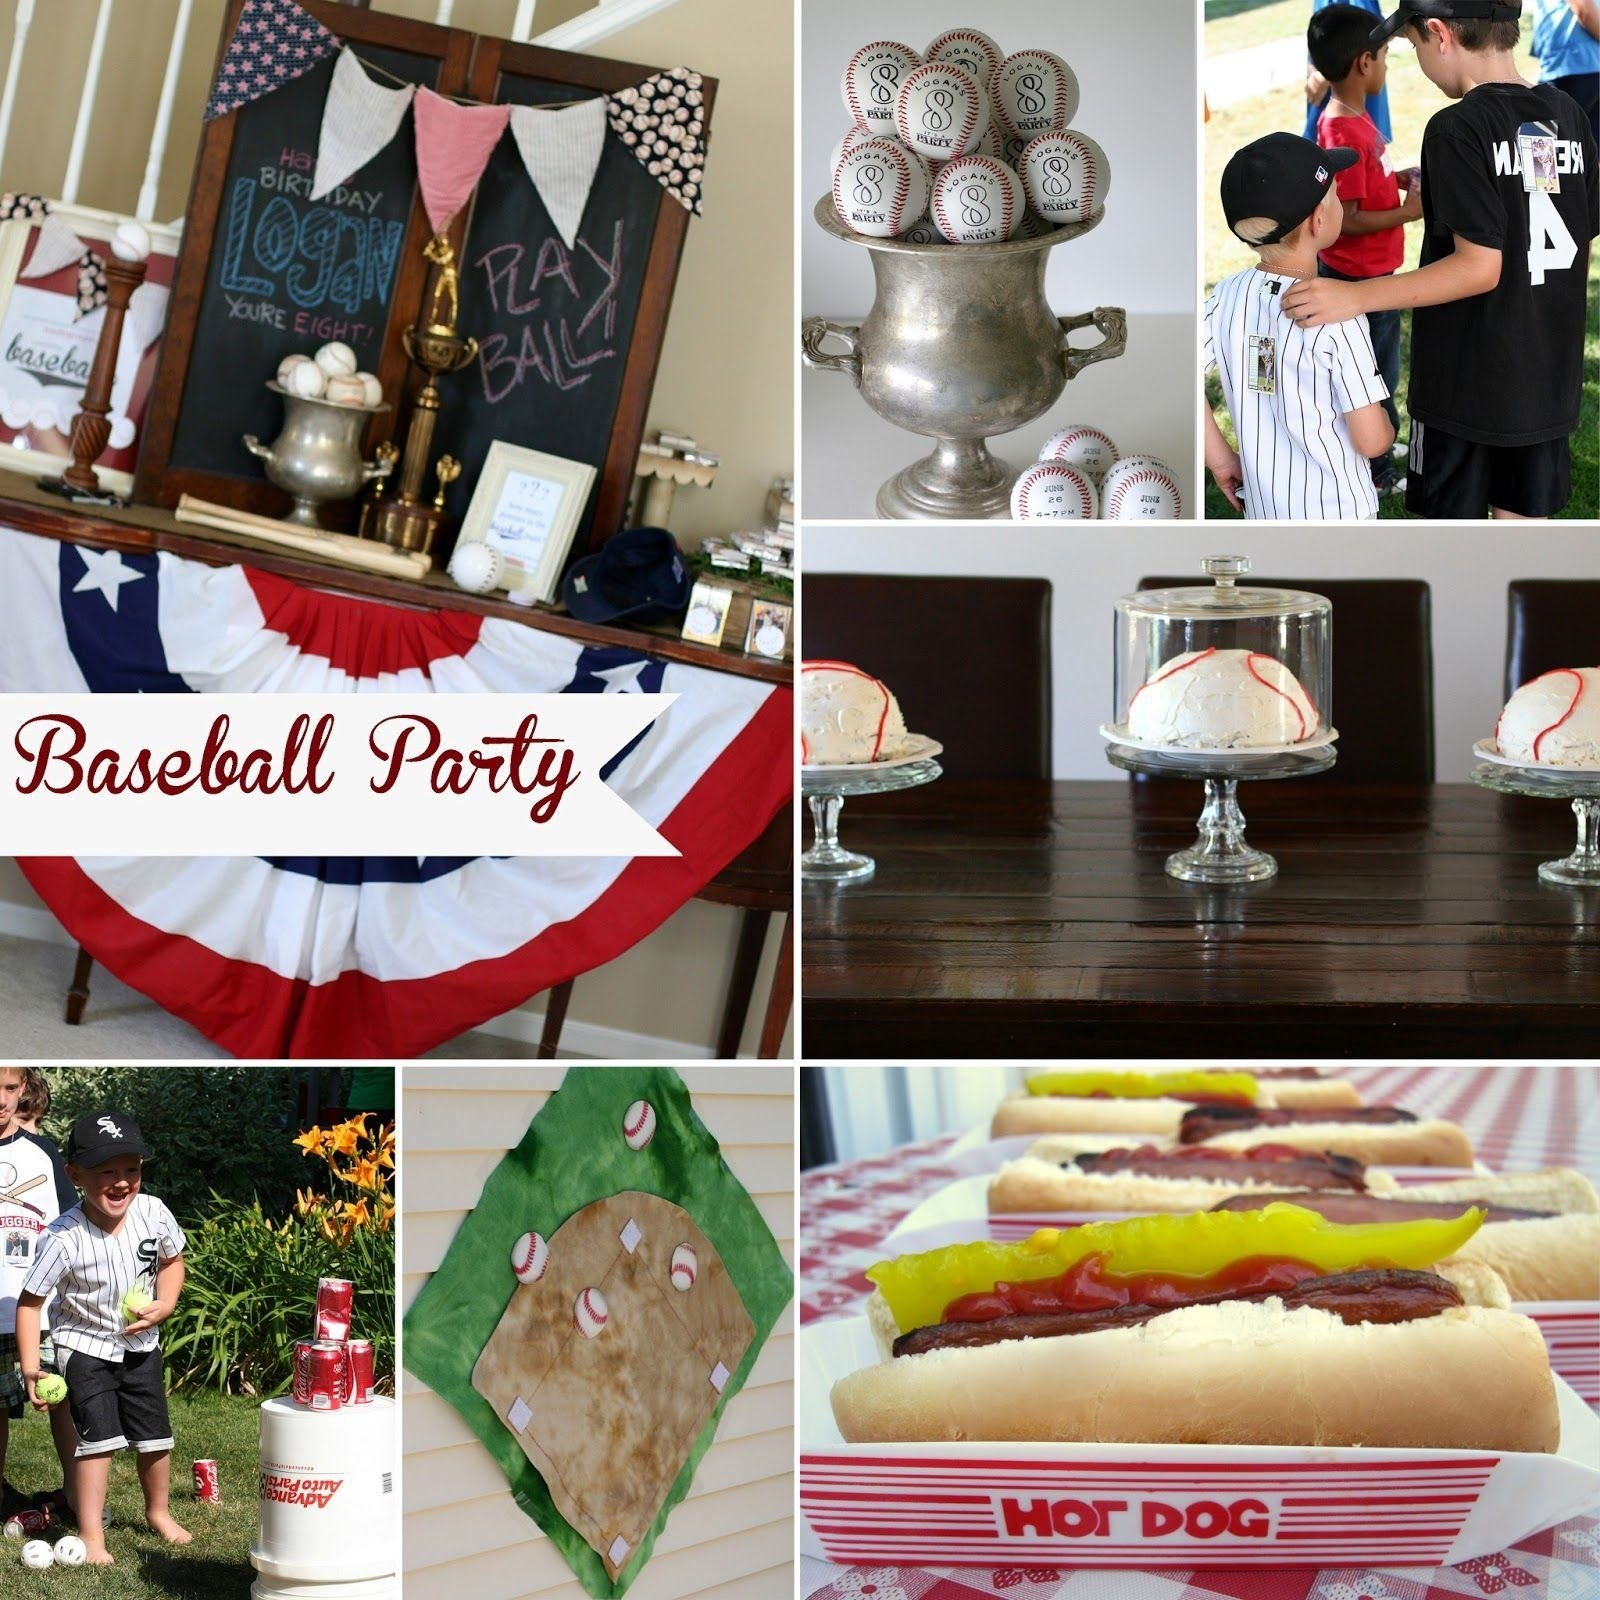 10 Lovely Birthday Ideas For 8 Year Old Boy baseball birthday party for 8 year old boys birthday party 1 2020